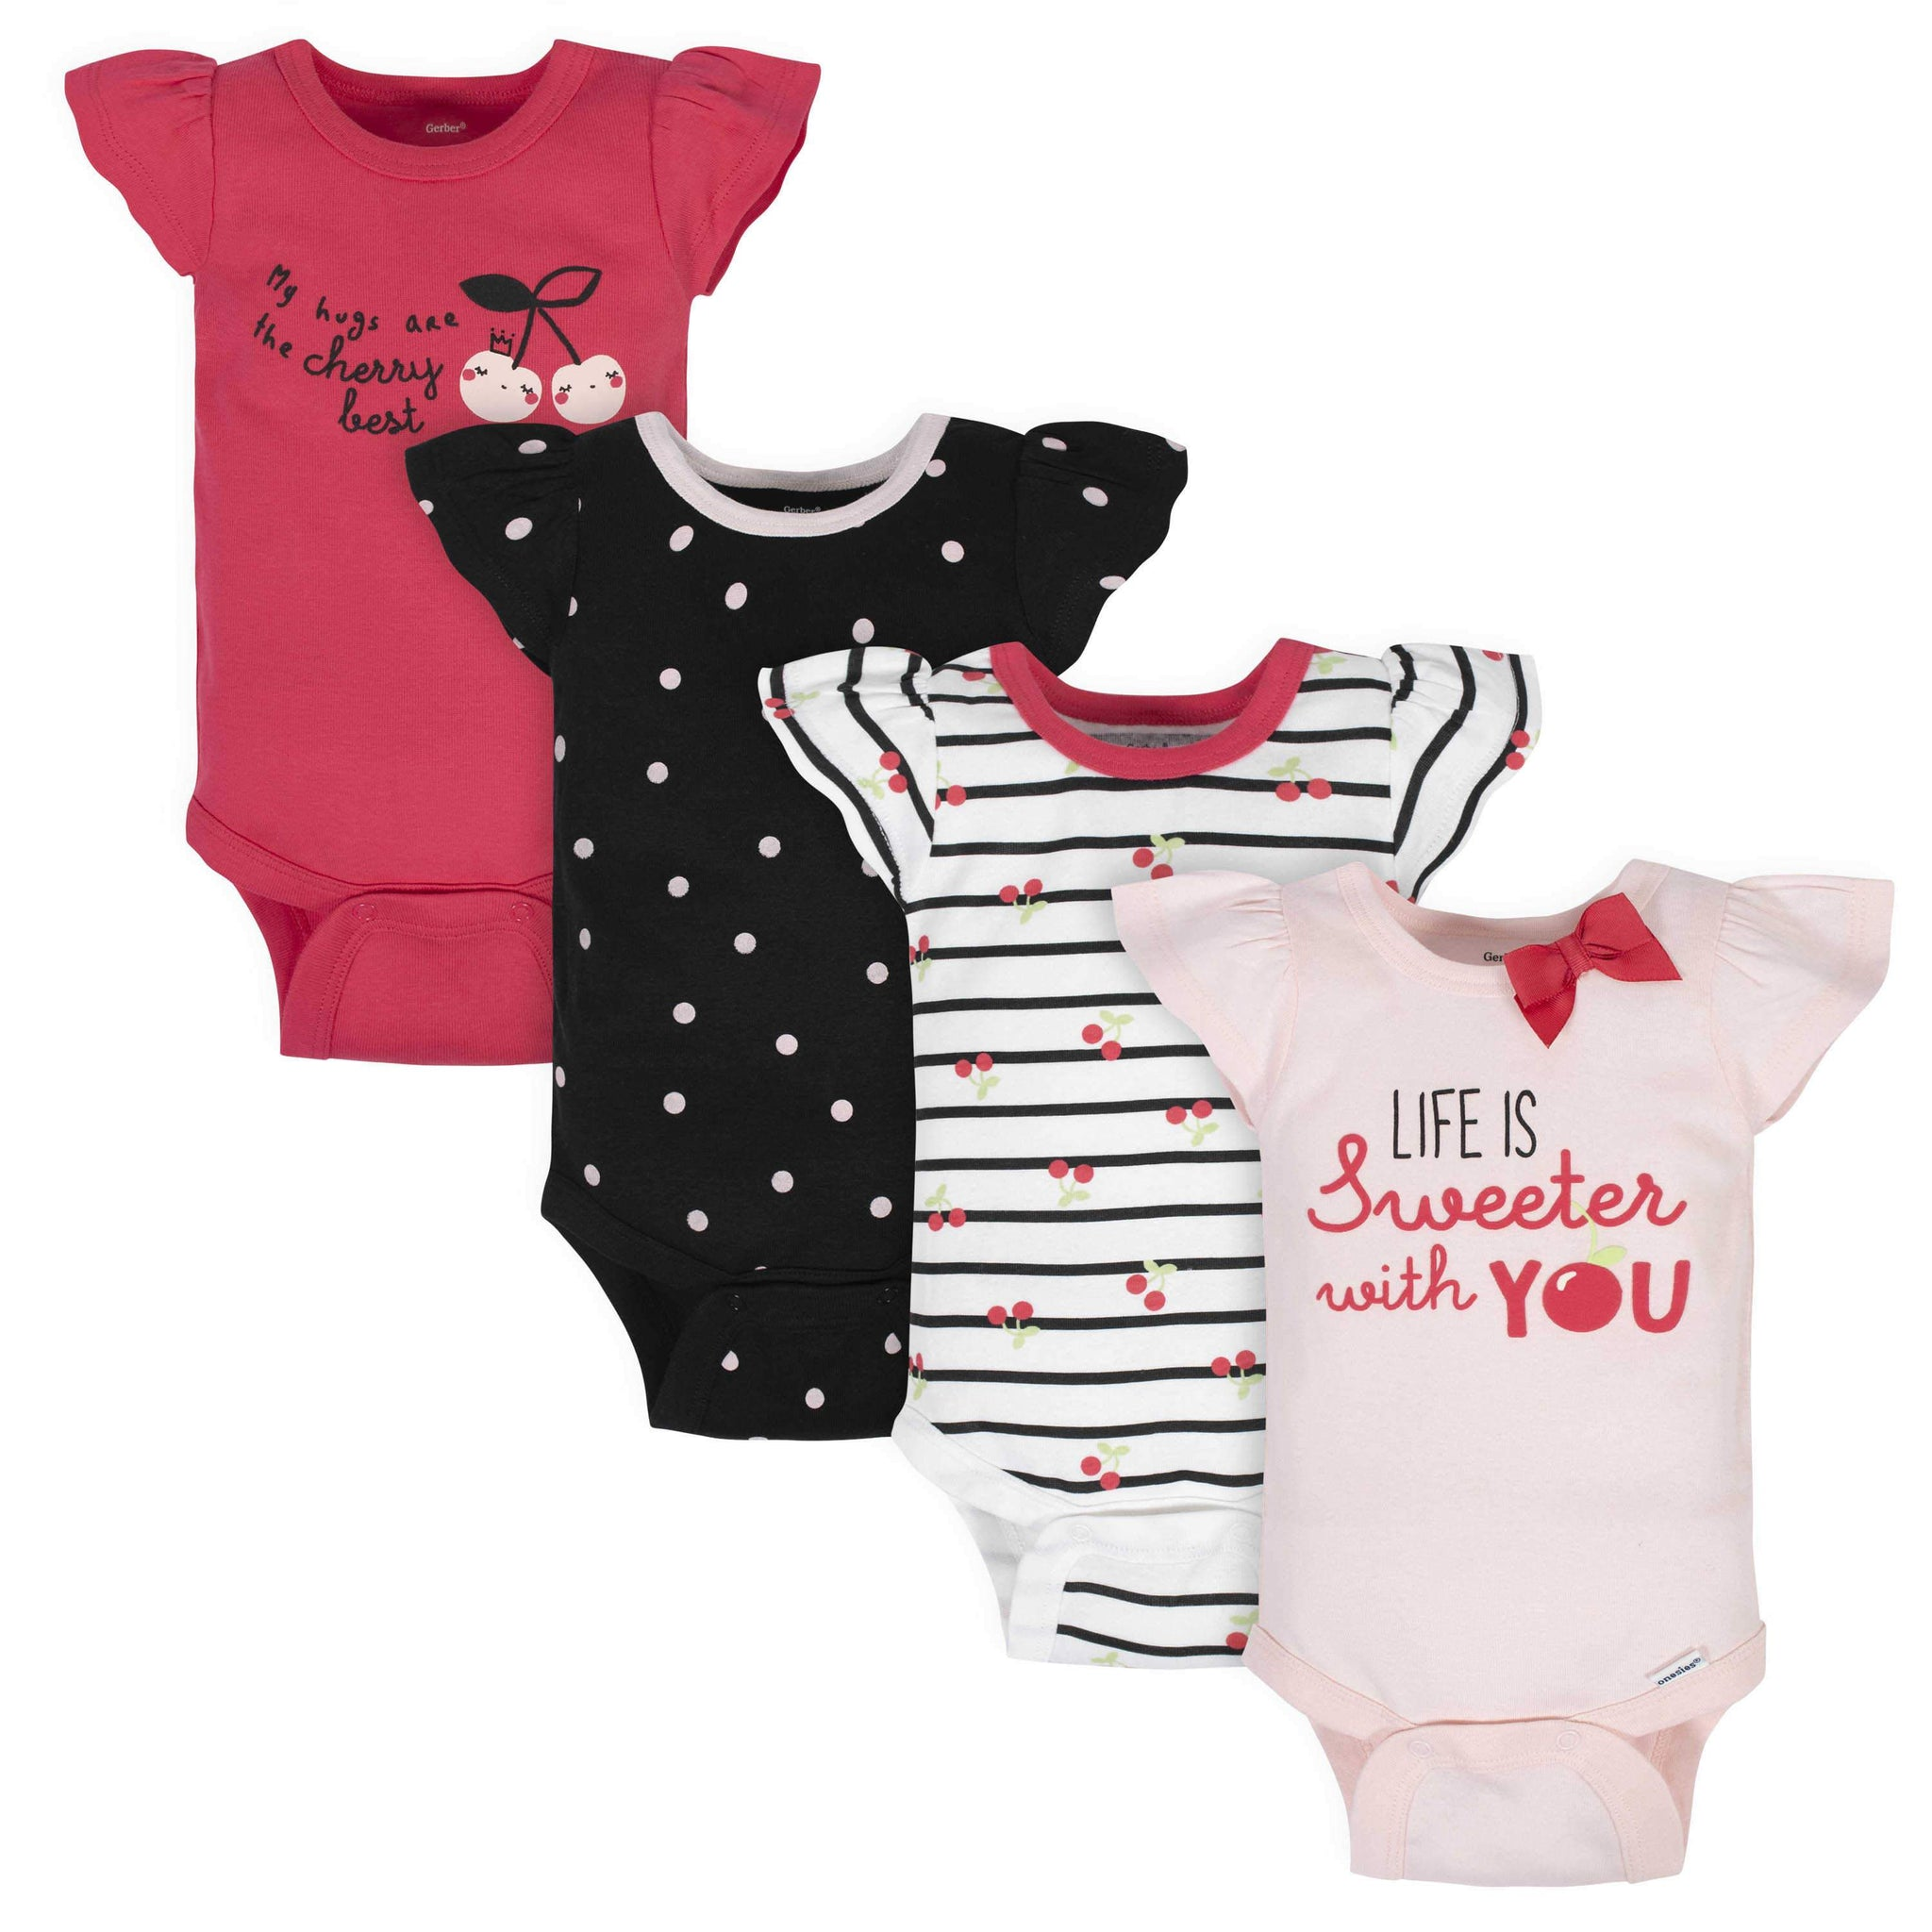 4-Pack Baby Girls Cherry Short Sleeve Onesies Bodysuits